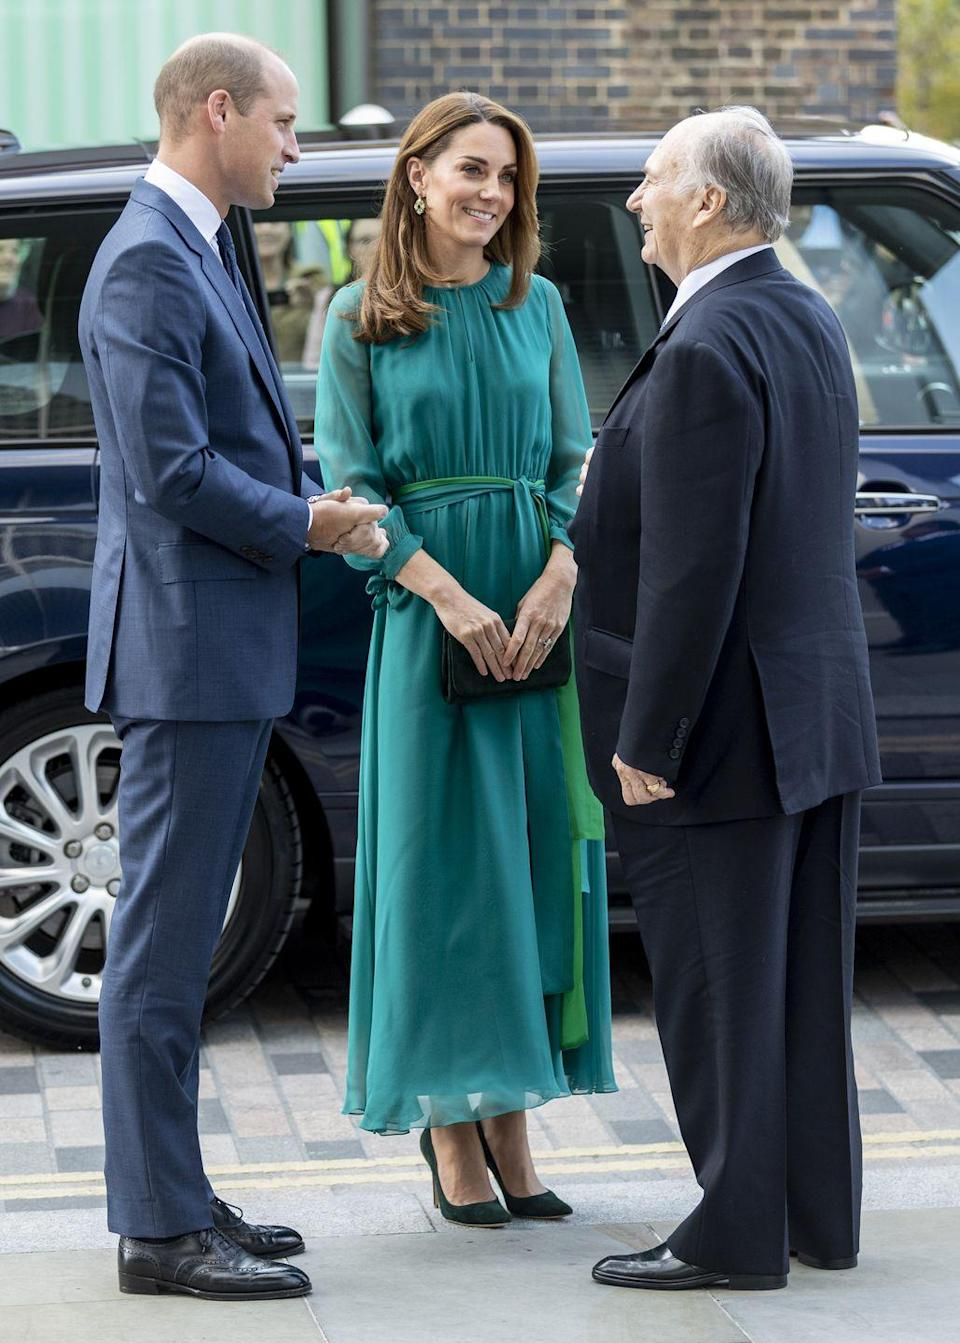 """<p>The Duchess of Cambridge stepped out for a meeting with Prince Shah Karim Al Hussaini, Aga Khan IV at the Aga Khan Centre wearing dark <a href=""""https://www.net-a-porter.com/us/en/product/1114994/aross_girl_x_soler/amanda-silk-georgette-maxi-dress?"""" rel=""""nofollow noopener"""" target=""""_blank"""" data-ylk=""""slk:green dress by ARoss Girl x Soler"""" class=""""link rapid-noclick-resp"""">green dress by ARoss Girl x Soler</a>. Kate completed the look with <a href=""""https://www.zeenwoman.com/row/wxe92033-green-dazzling-ceramic-drops"""" rel=""""nofollow noopener"""" target=""""_blank"""" data-ylk=""""slk:an affordable pair of earrings by the Pakistani designer Zeen"""" class=""""link rapid-noclick-resp"""">an affordable pair of earrings by the Pakistani designer Zeen</a>.</p>"""